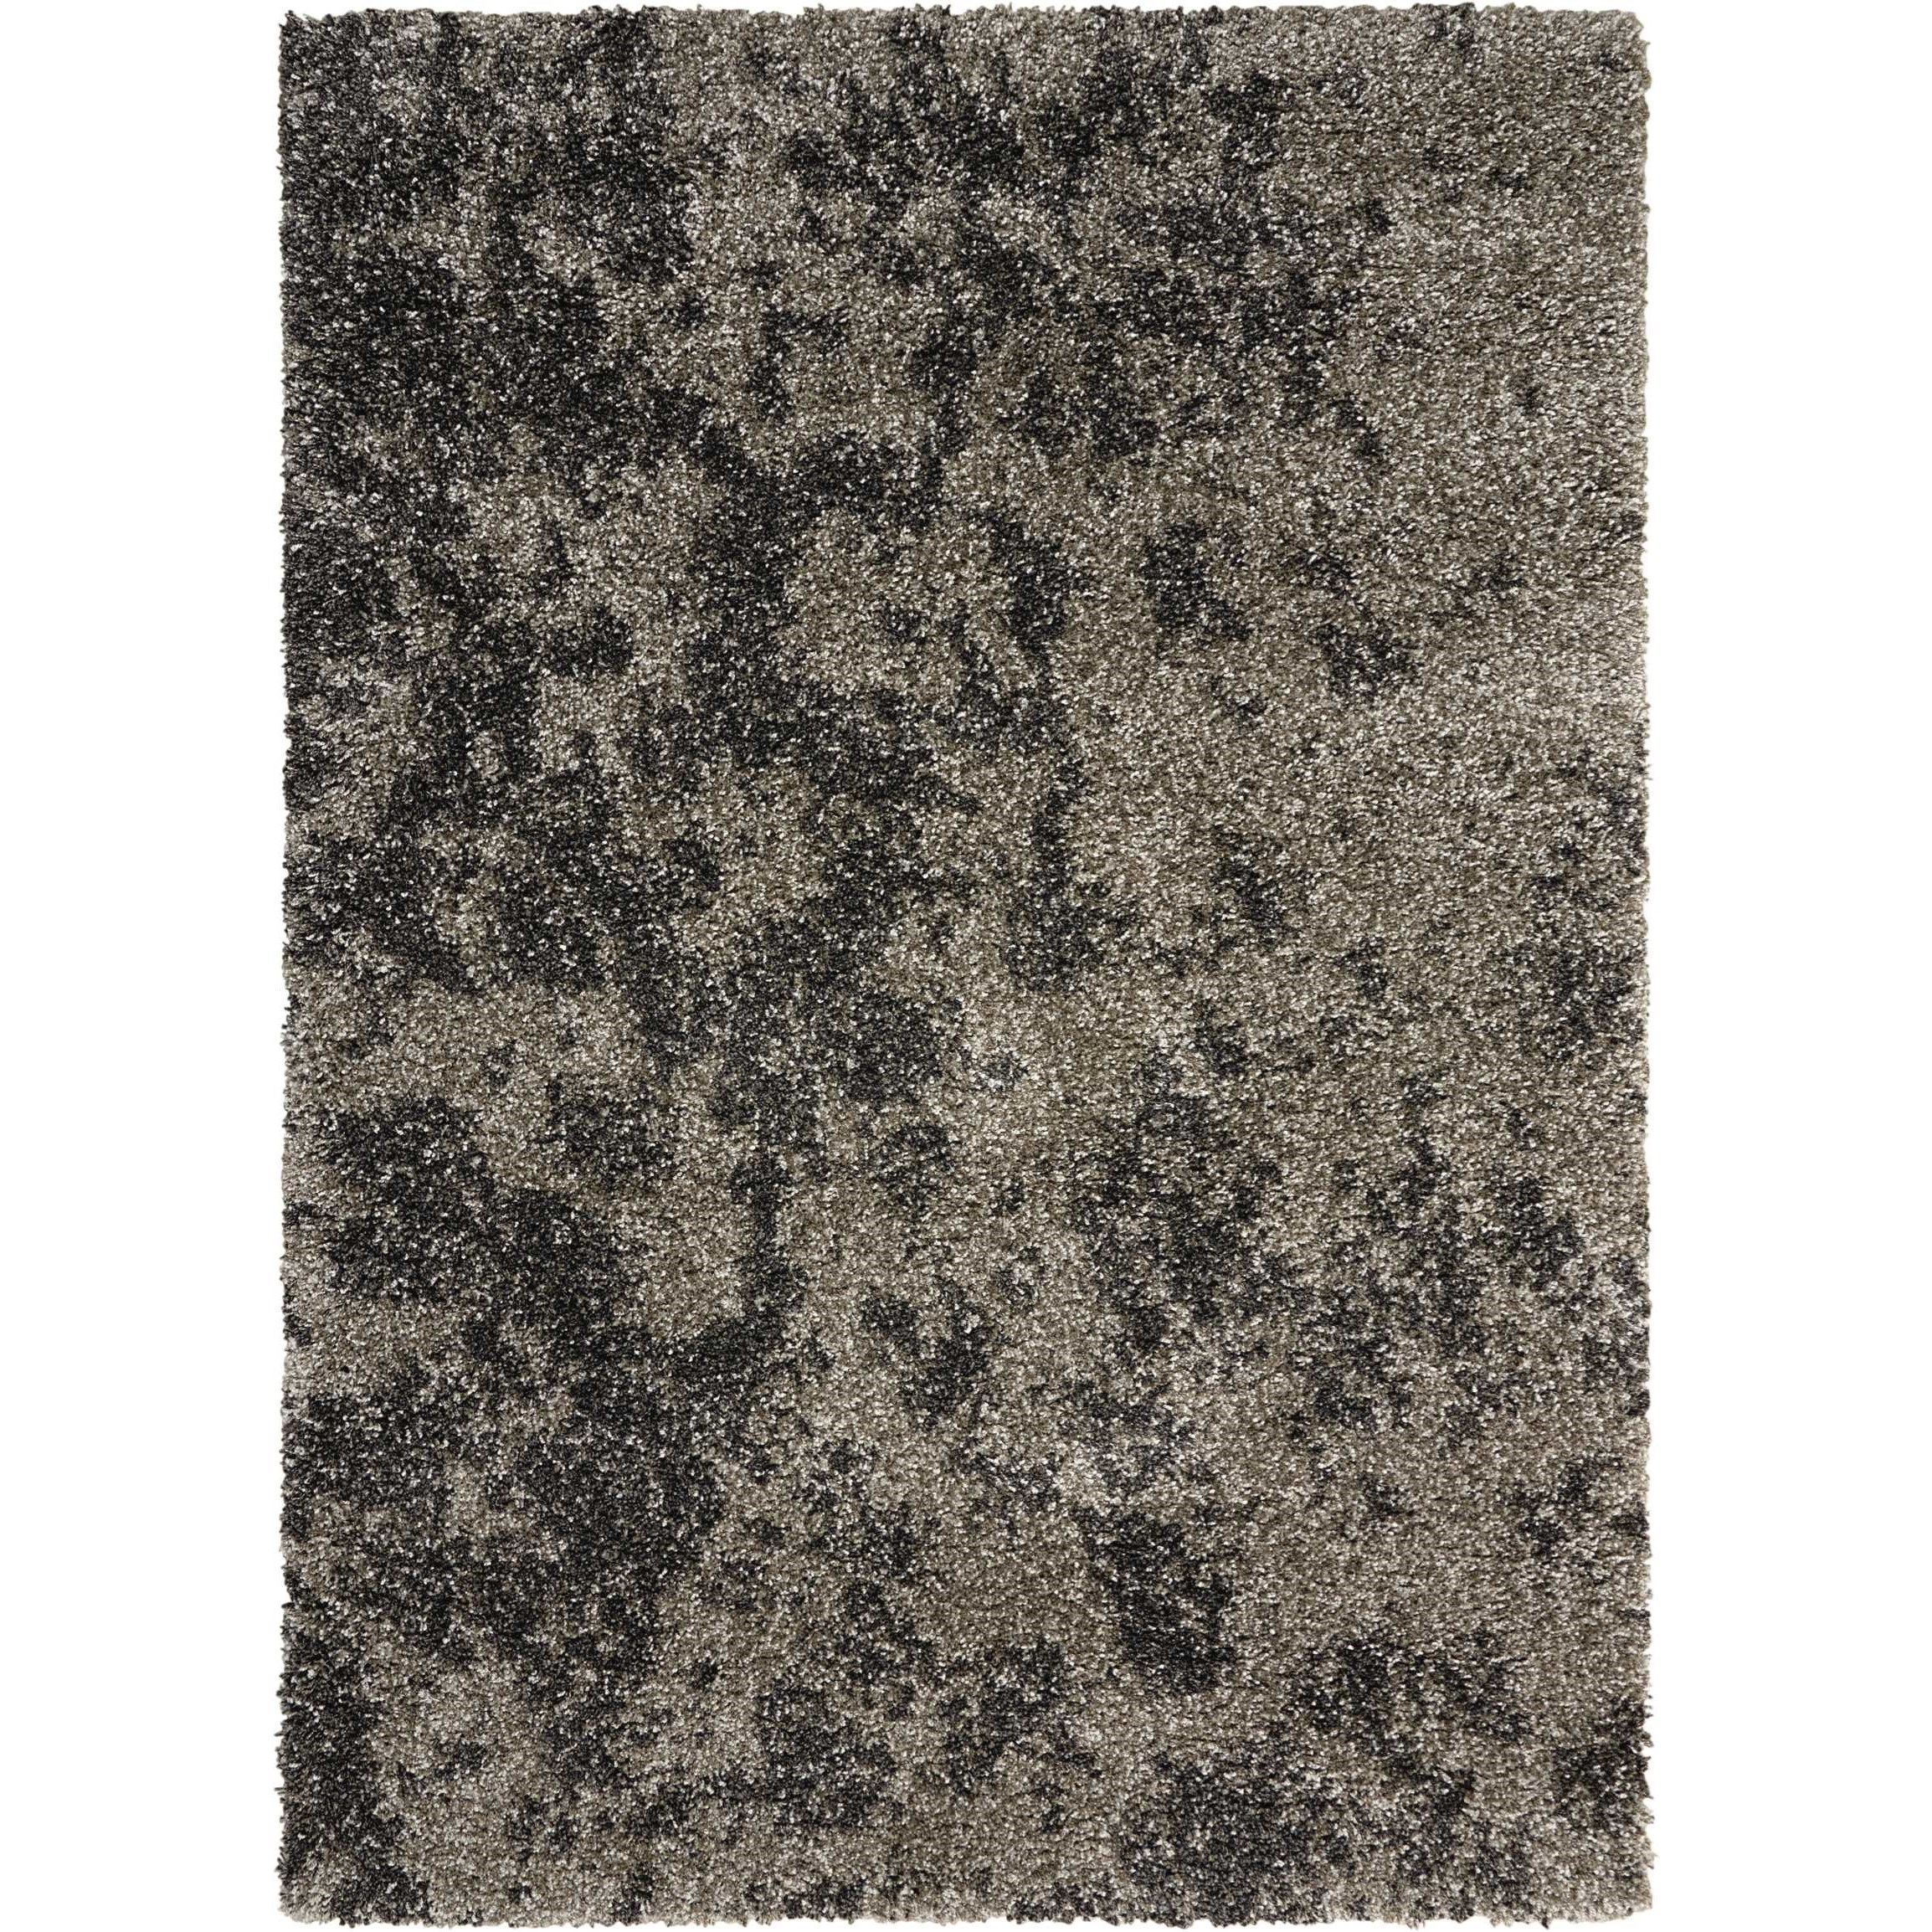 """Amore 3'11"""" x 5'11"""" Granite Rectangle Rug by Nourison at Sprintz Furniture"""